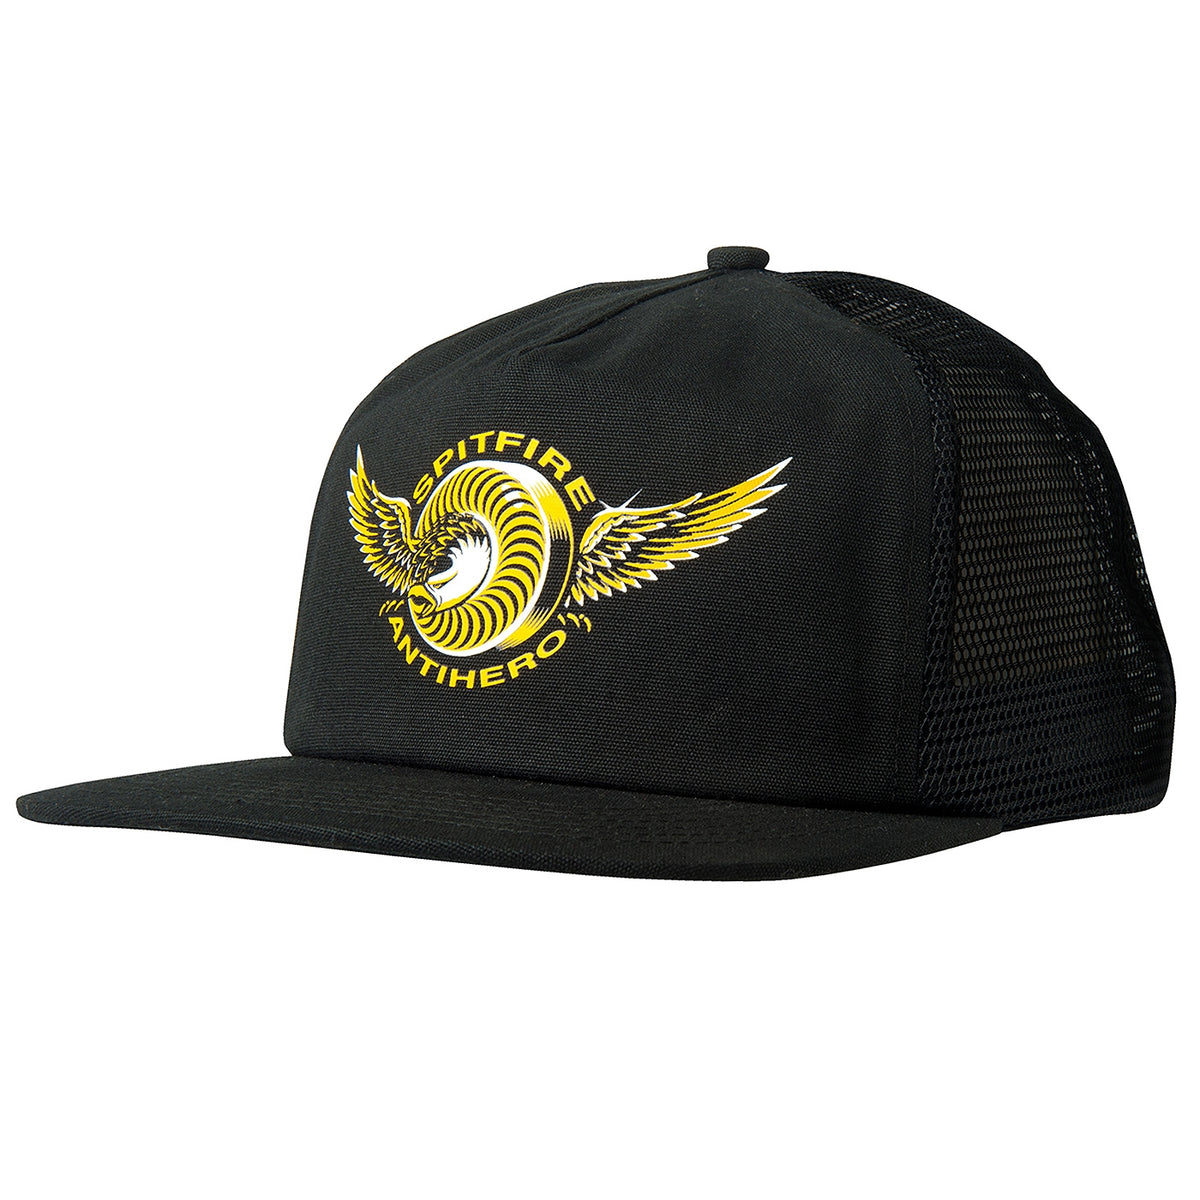 Trucker Cap in Black by Spitfire Wheels x Anti Hero  52350d2a197